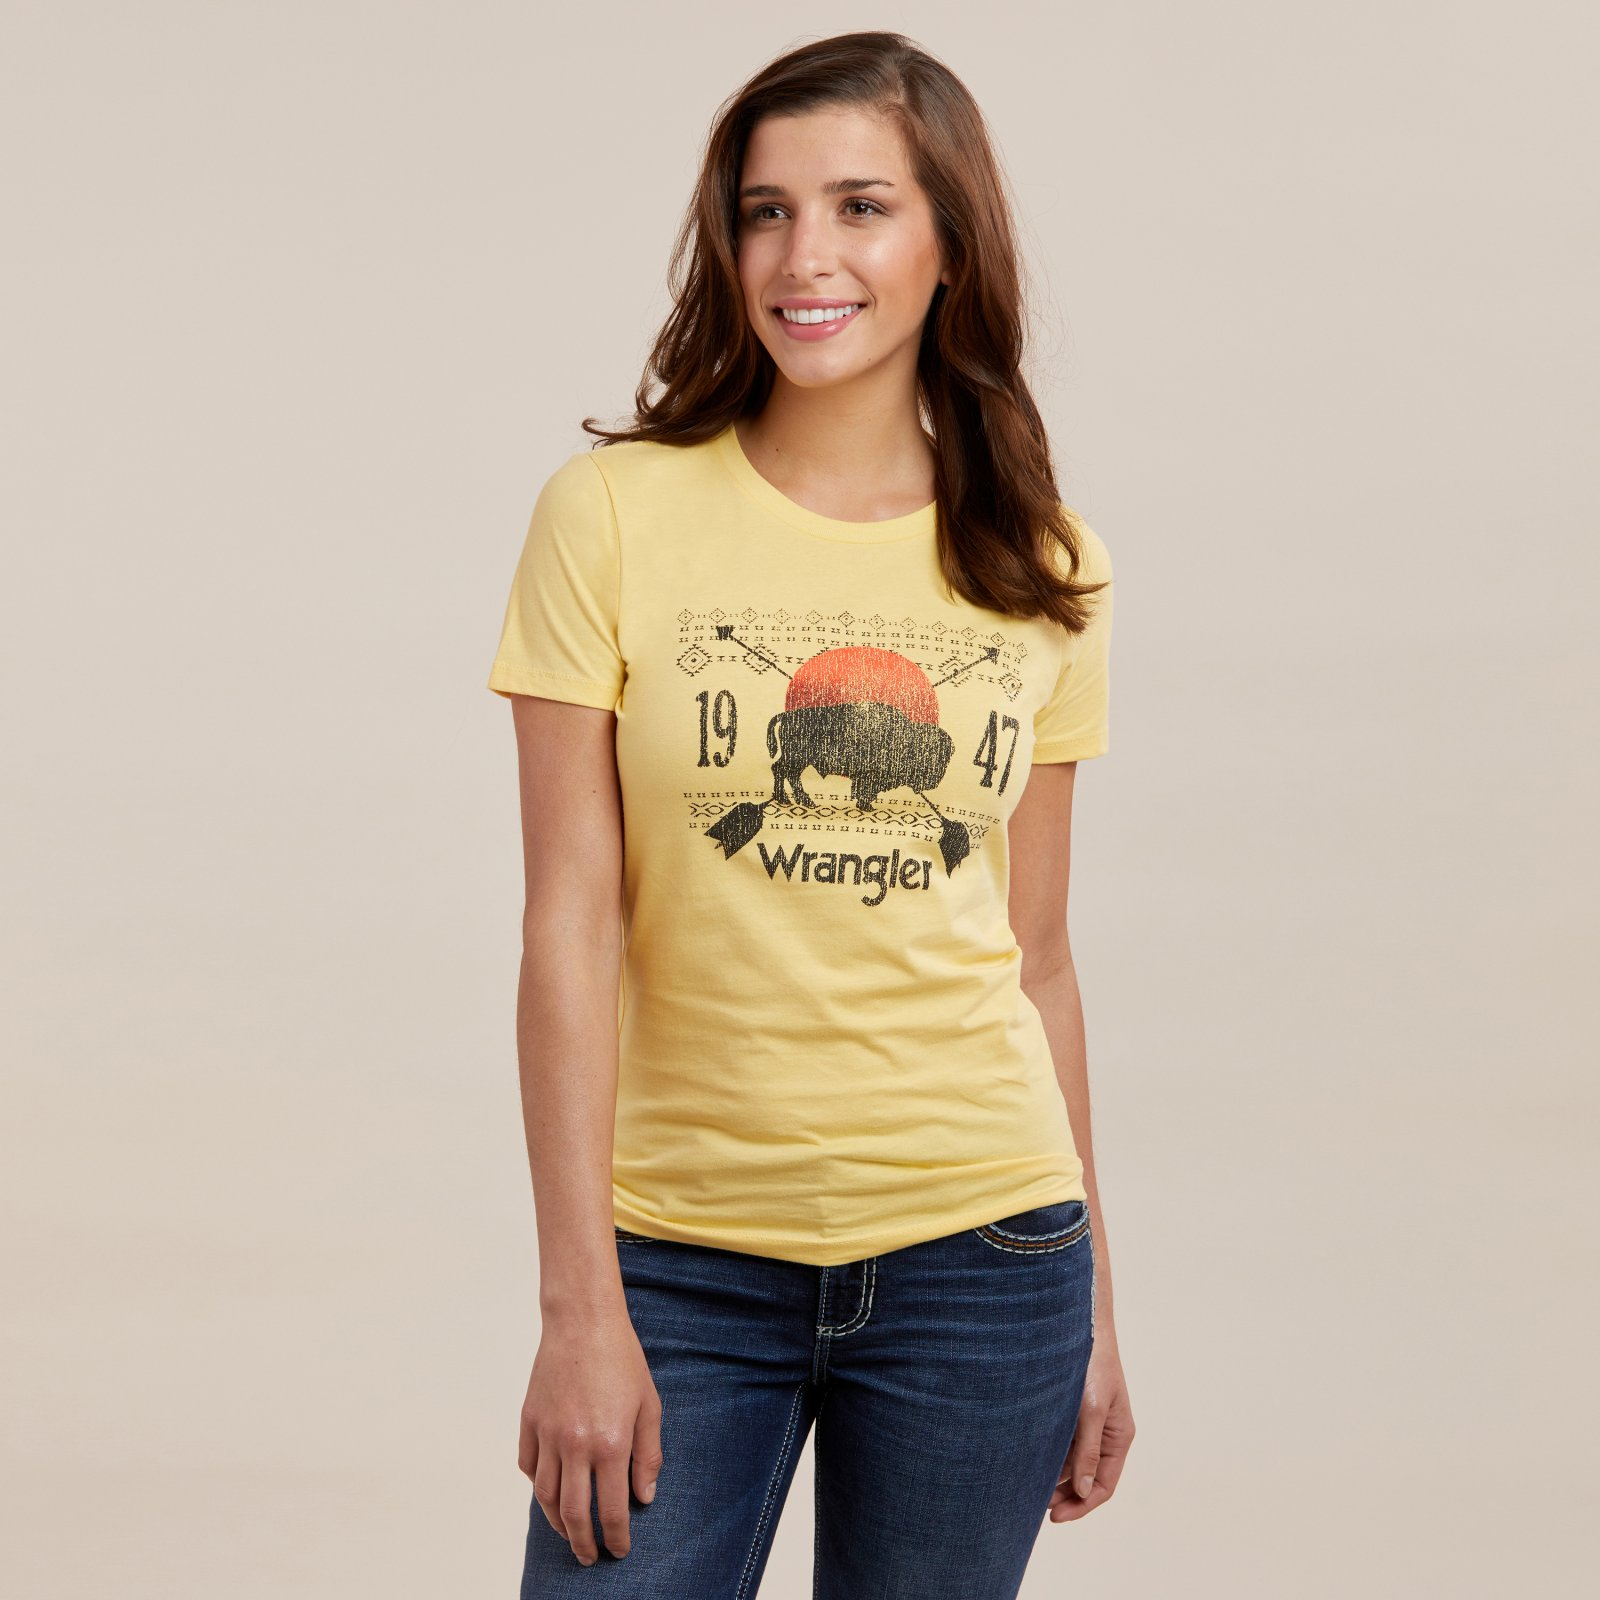 Ladies Short Sleeve Buffalo T-Shirt from Wrangler